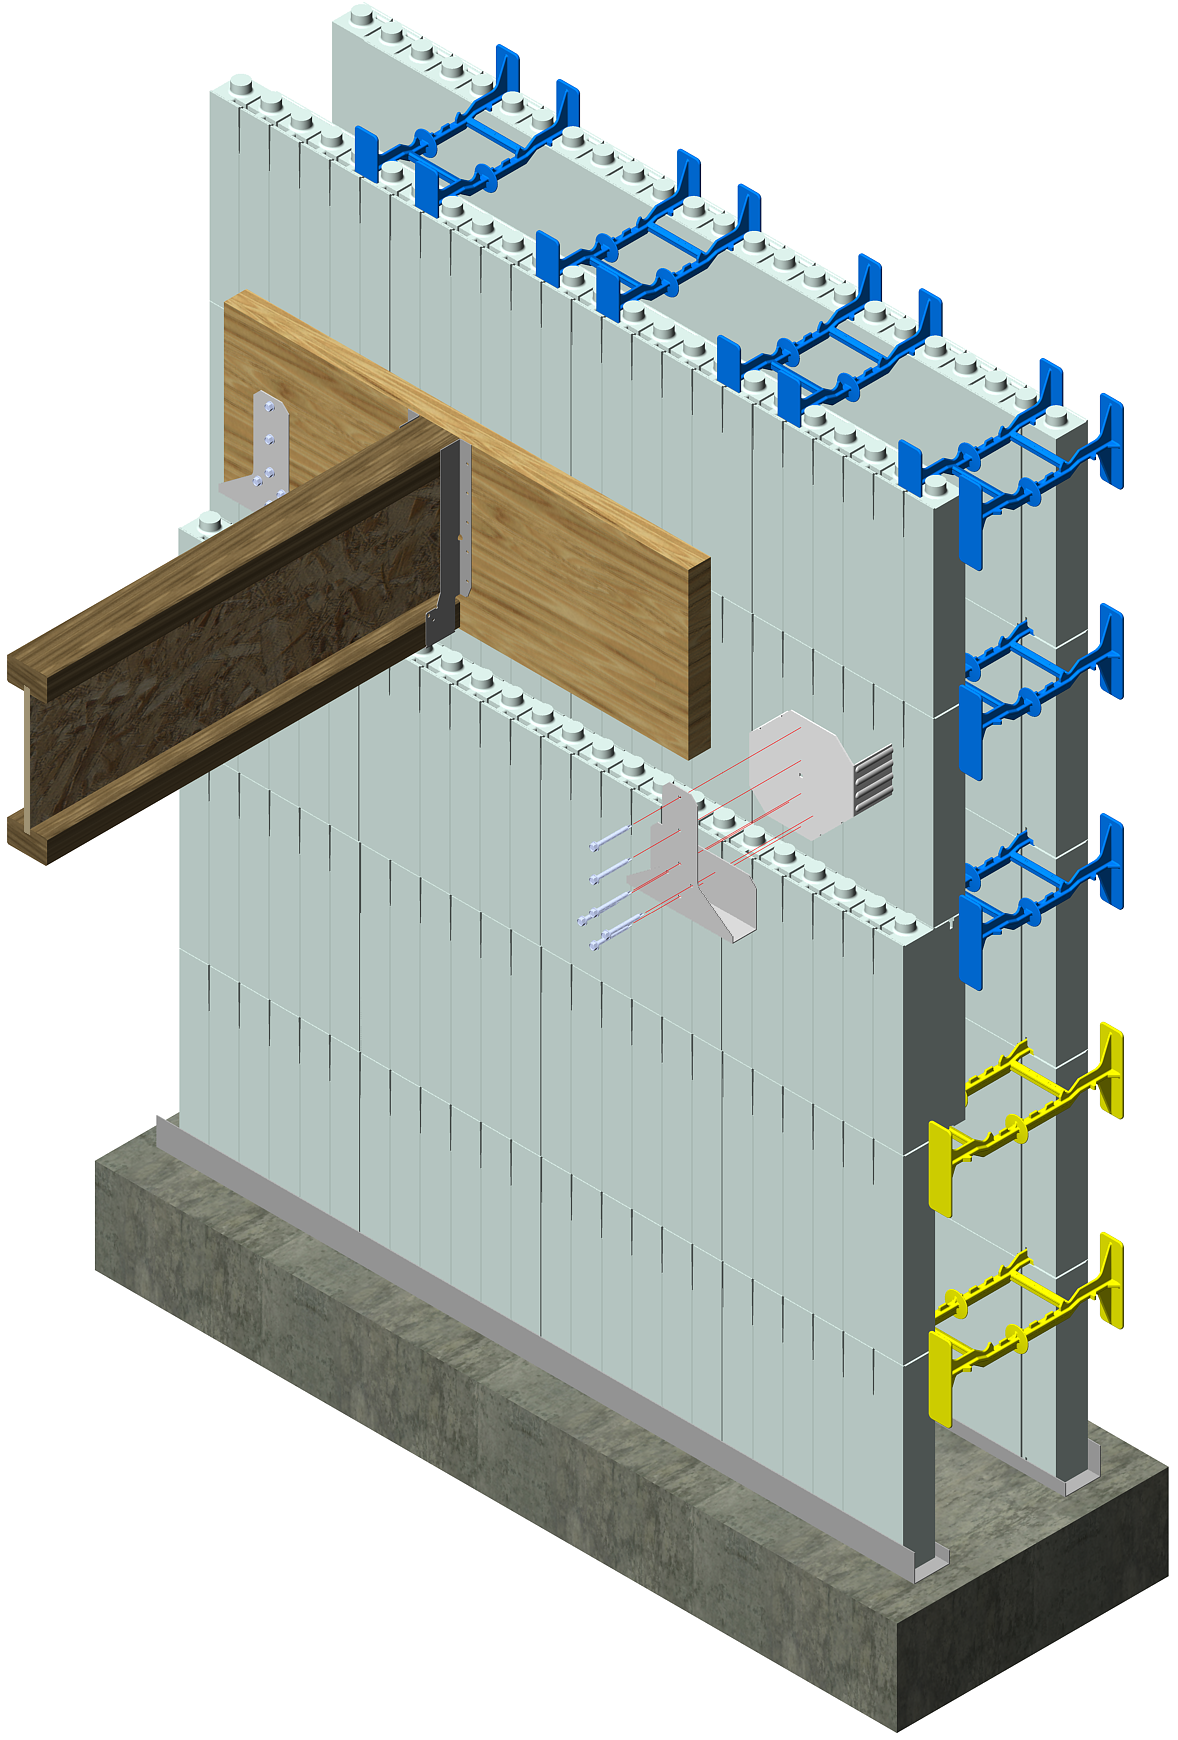 Icf floor ledger attachment simpson icfvl attach ledger for Icf foam block